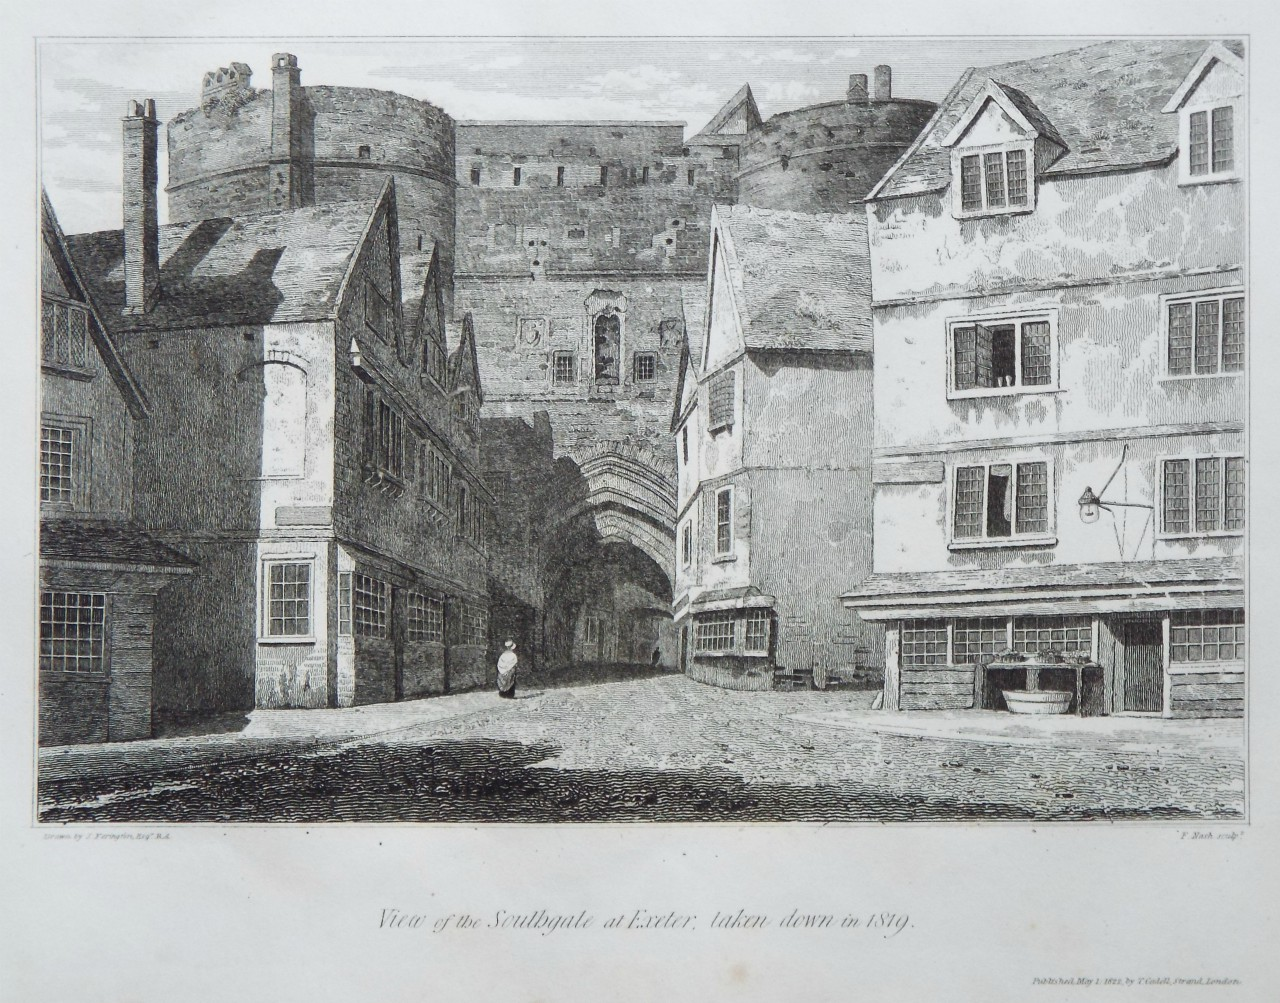 Print - View of the Southgate at Exeter, taken down in 1819. - Nash